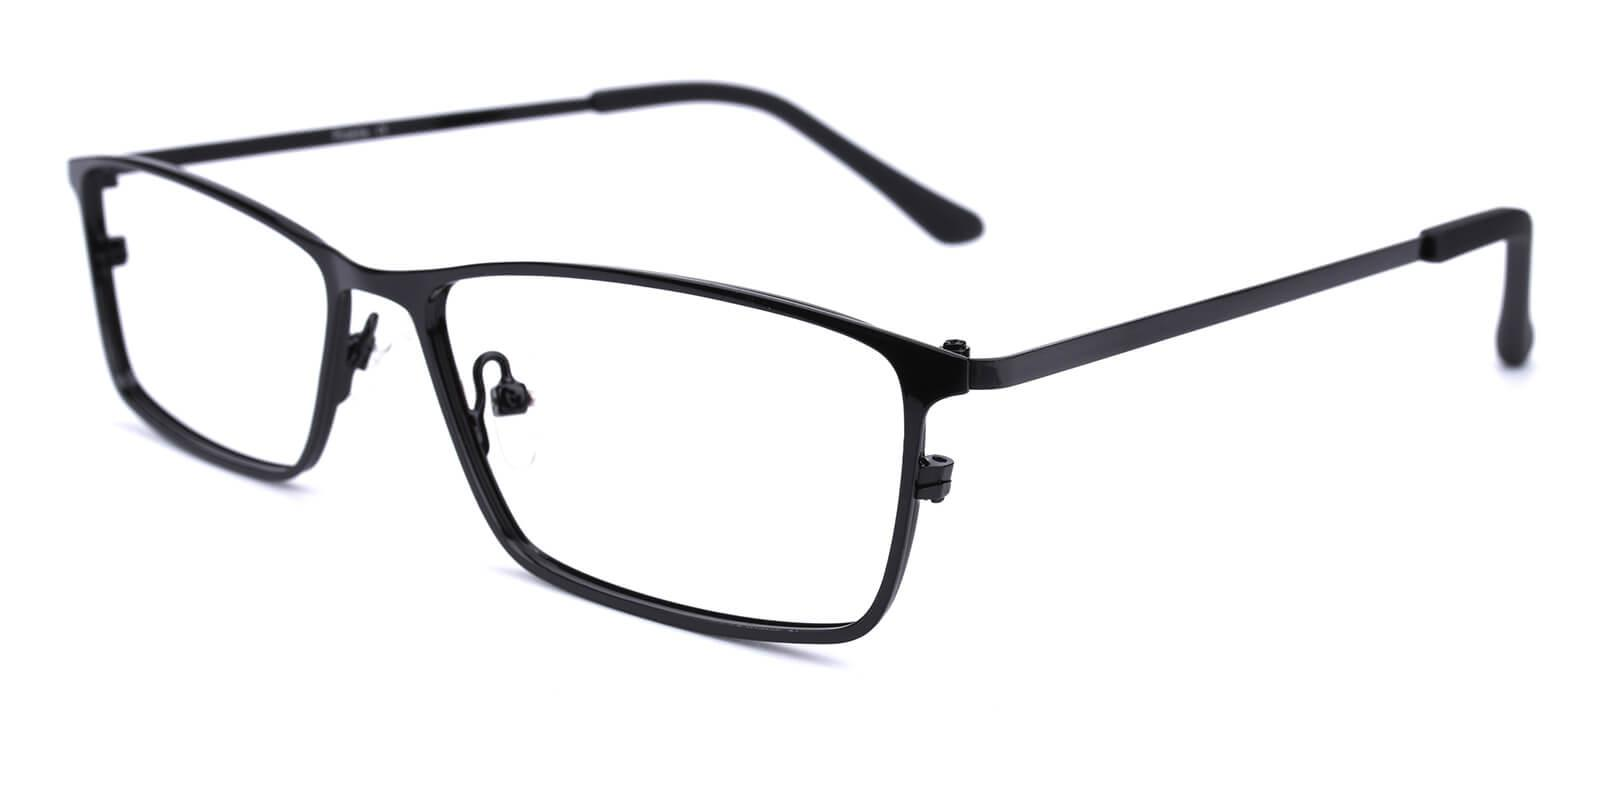 Wildfire-Black-Rectangle-Metal-Eyeglasses-additional1